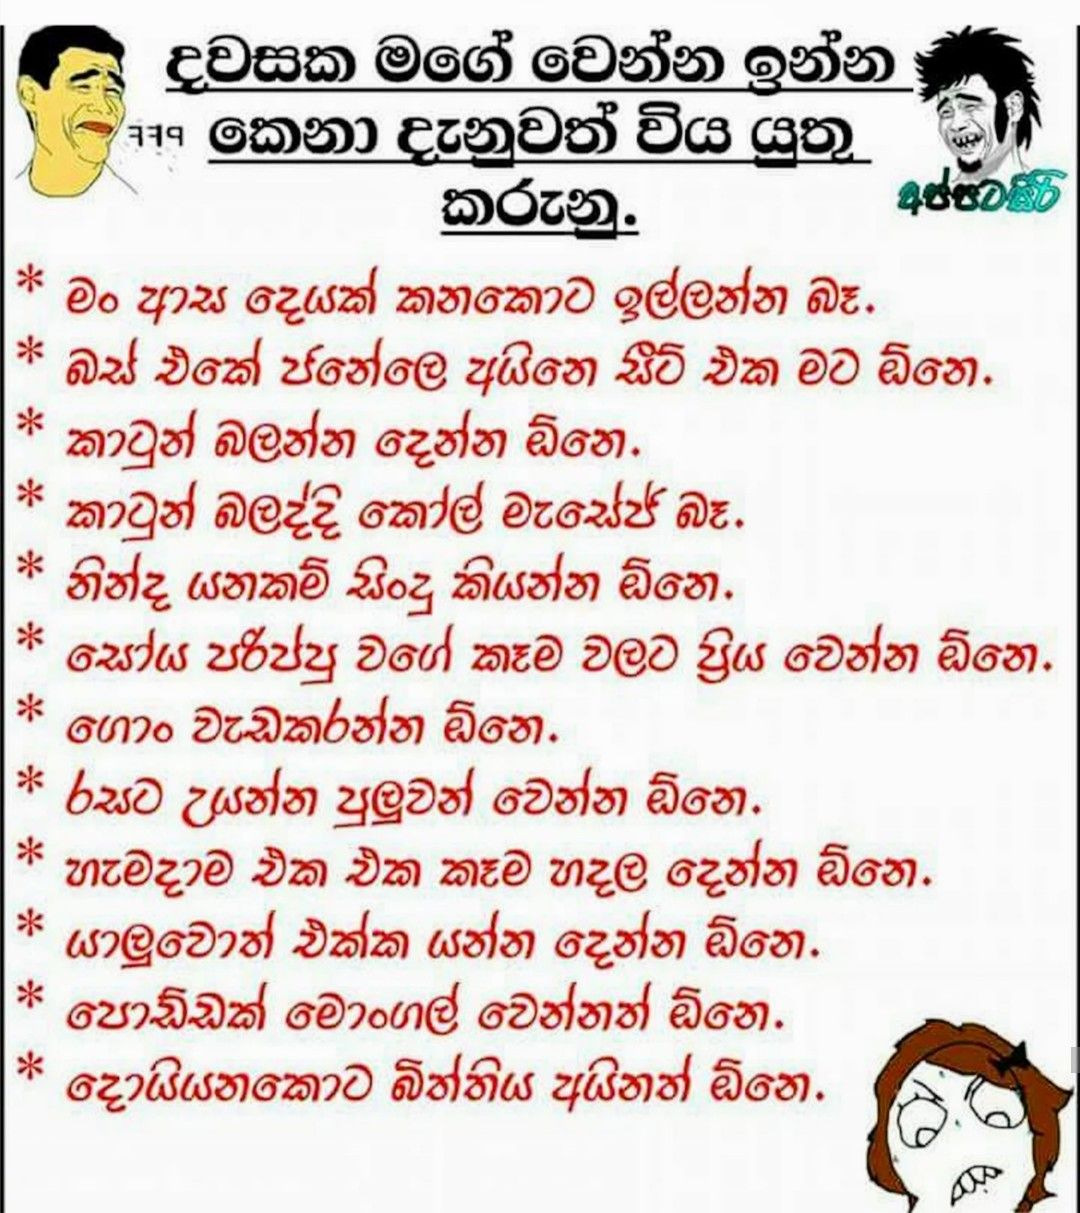 Pin by Fathi NuuH on Sinhala JoKes | Friends quotes, Jokes ...